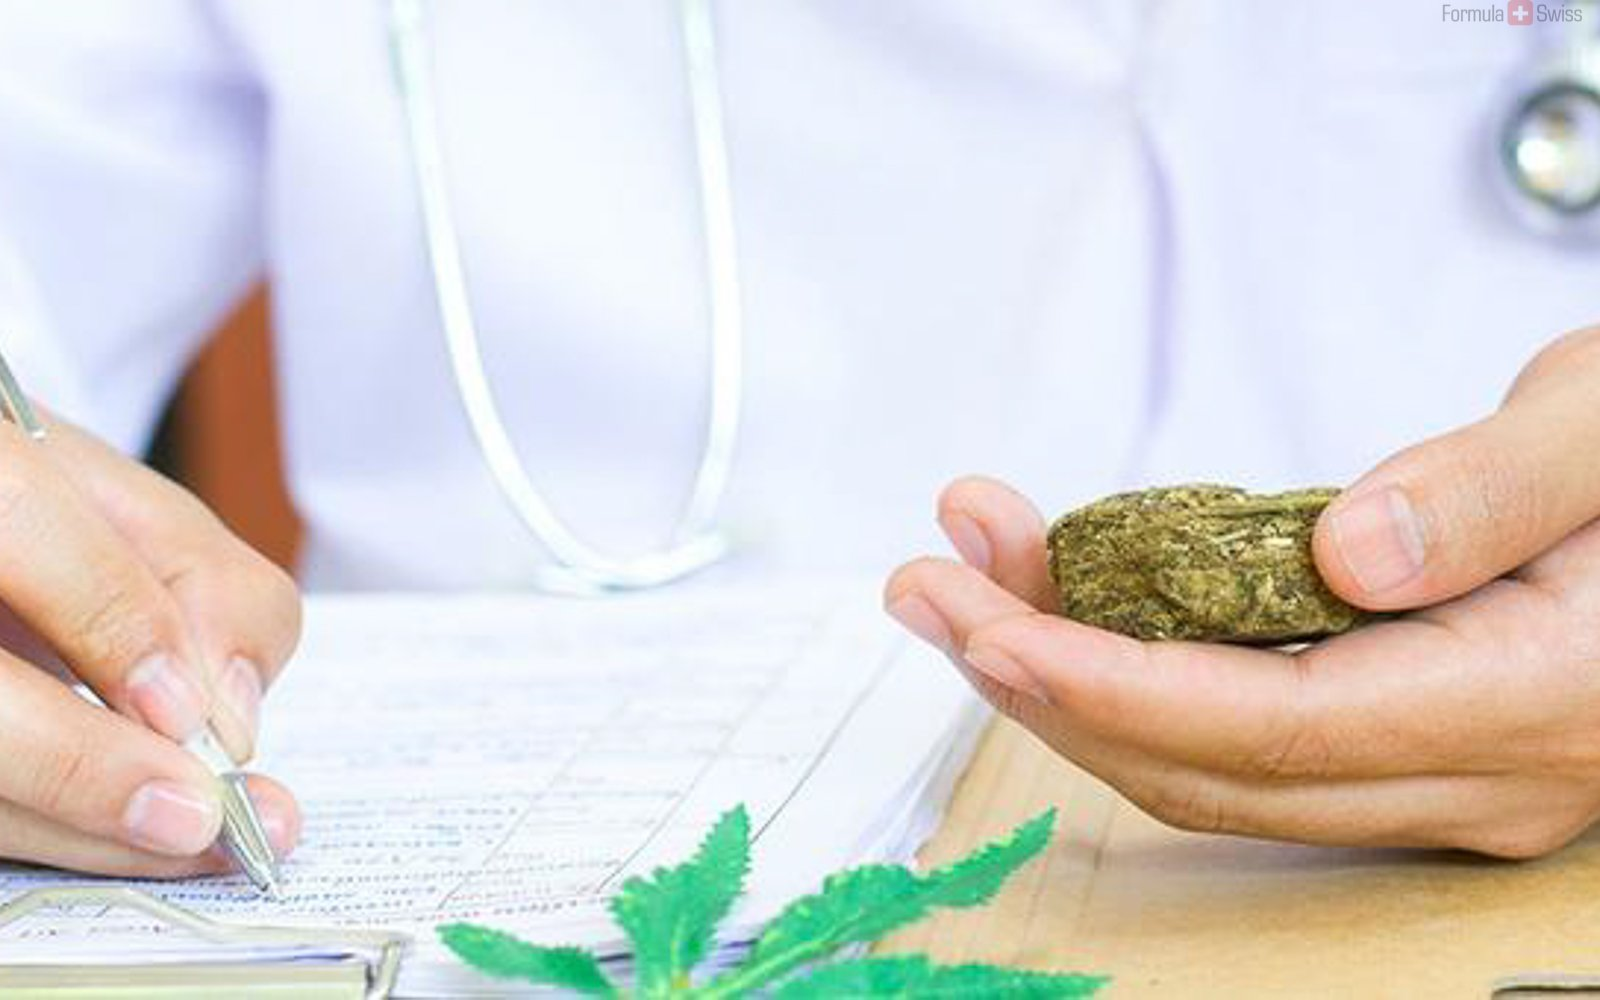 Huffington post speaks on cannabis for cancer